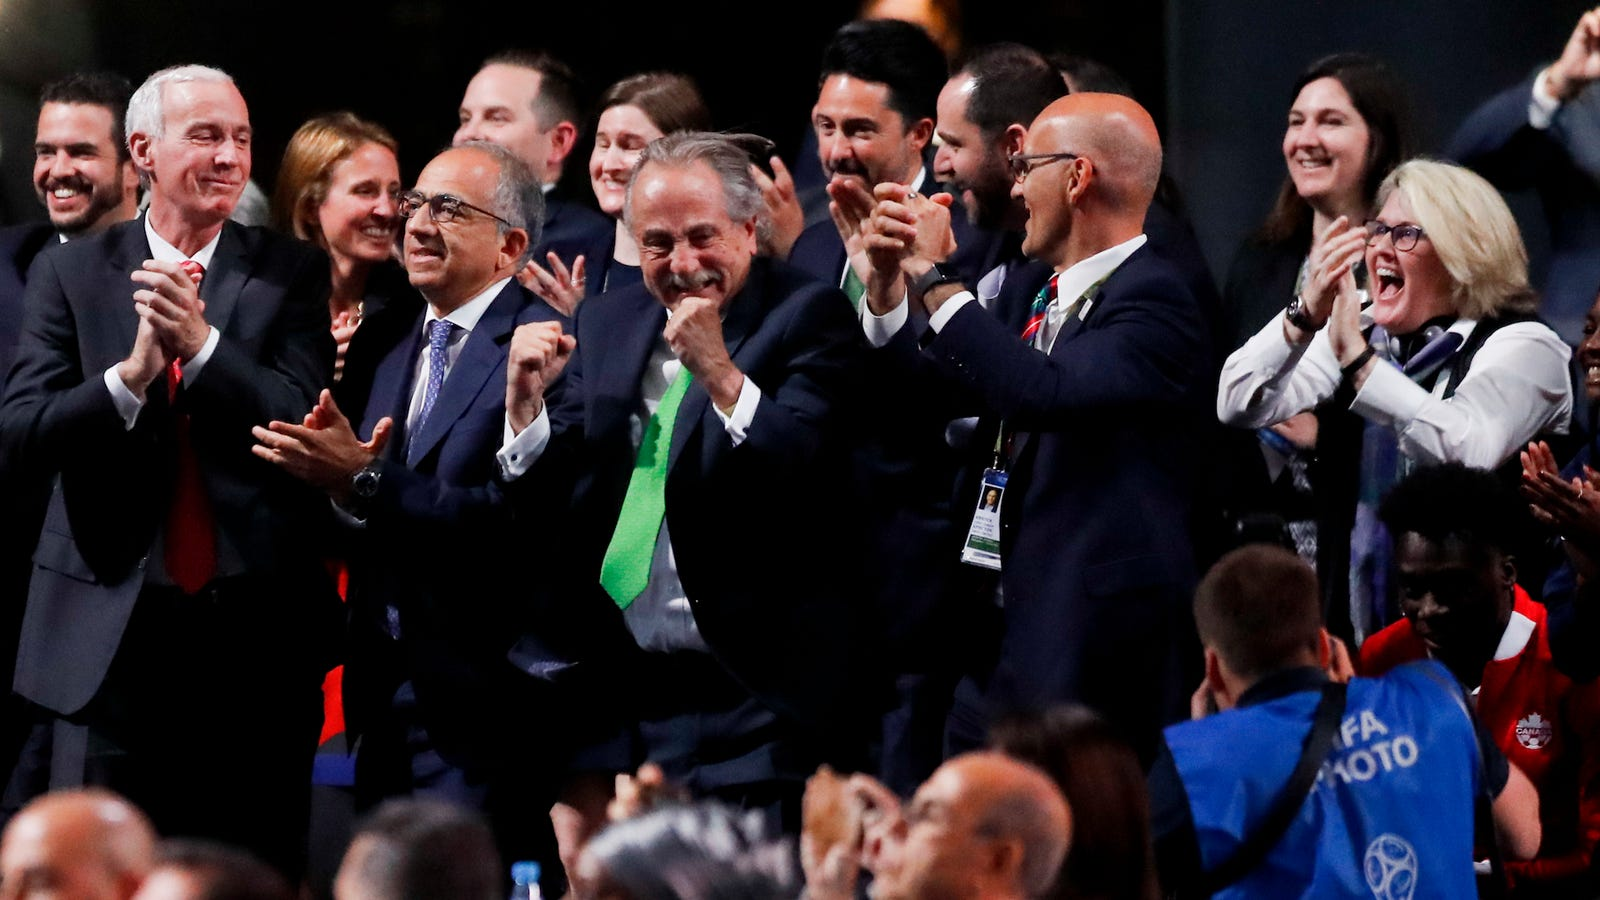 The U.S., Canada, And Mexico Will Host The 2026 World Cup